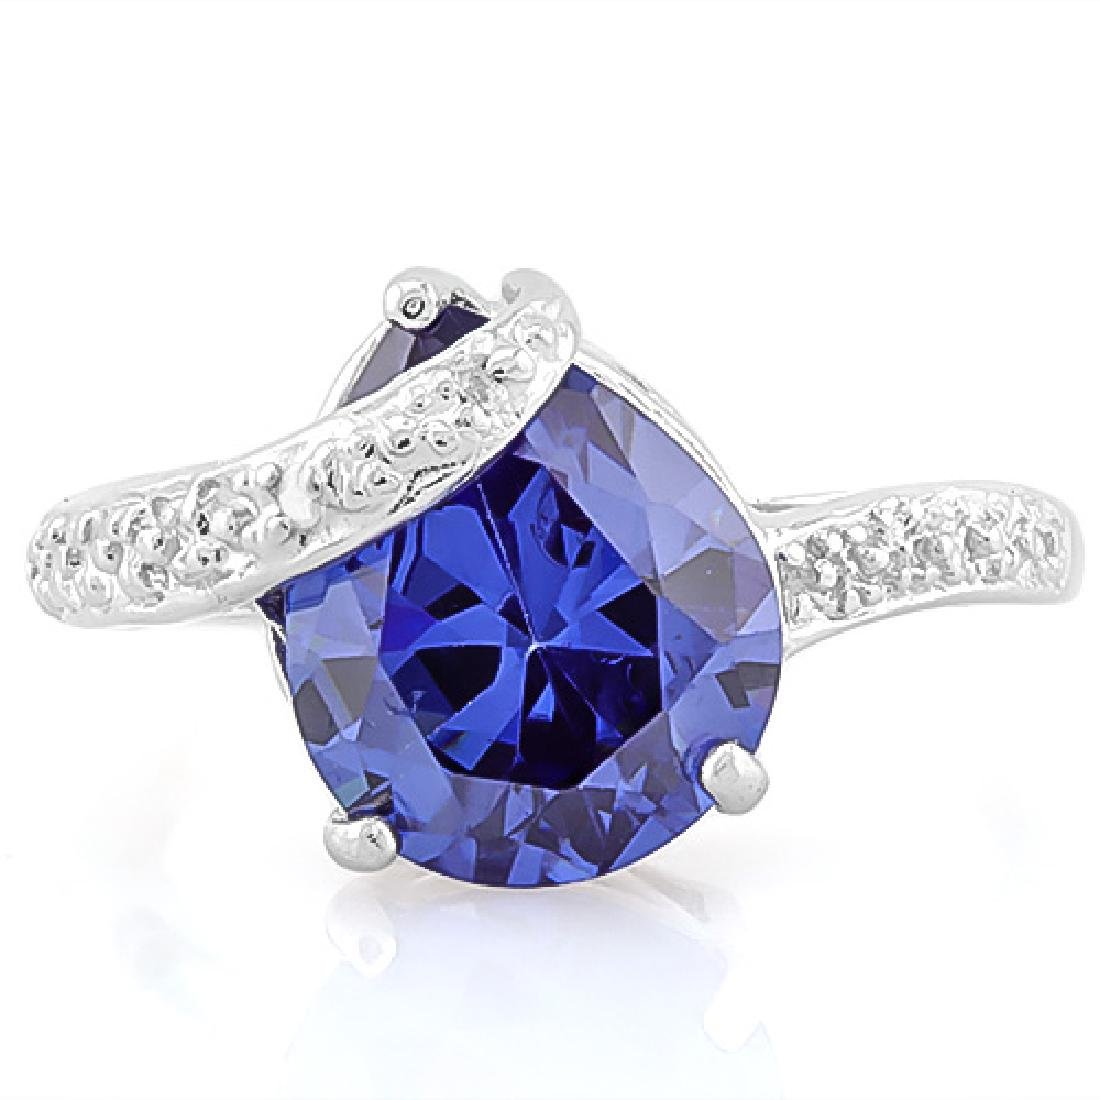 5 CARAT LAB TANZANITE & DIAMOND 925 STERLING SILVER RIN